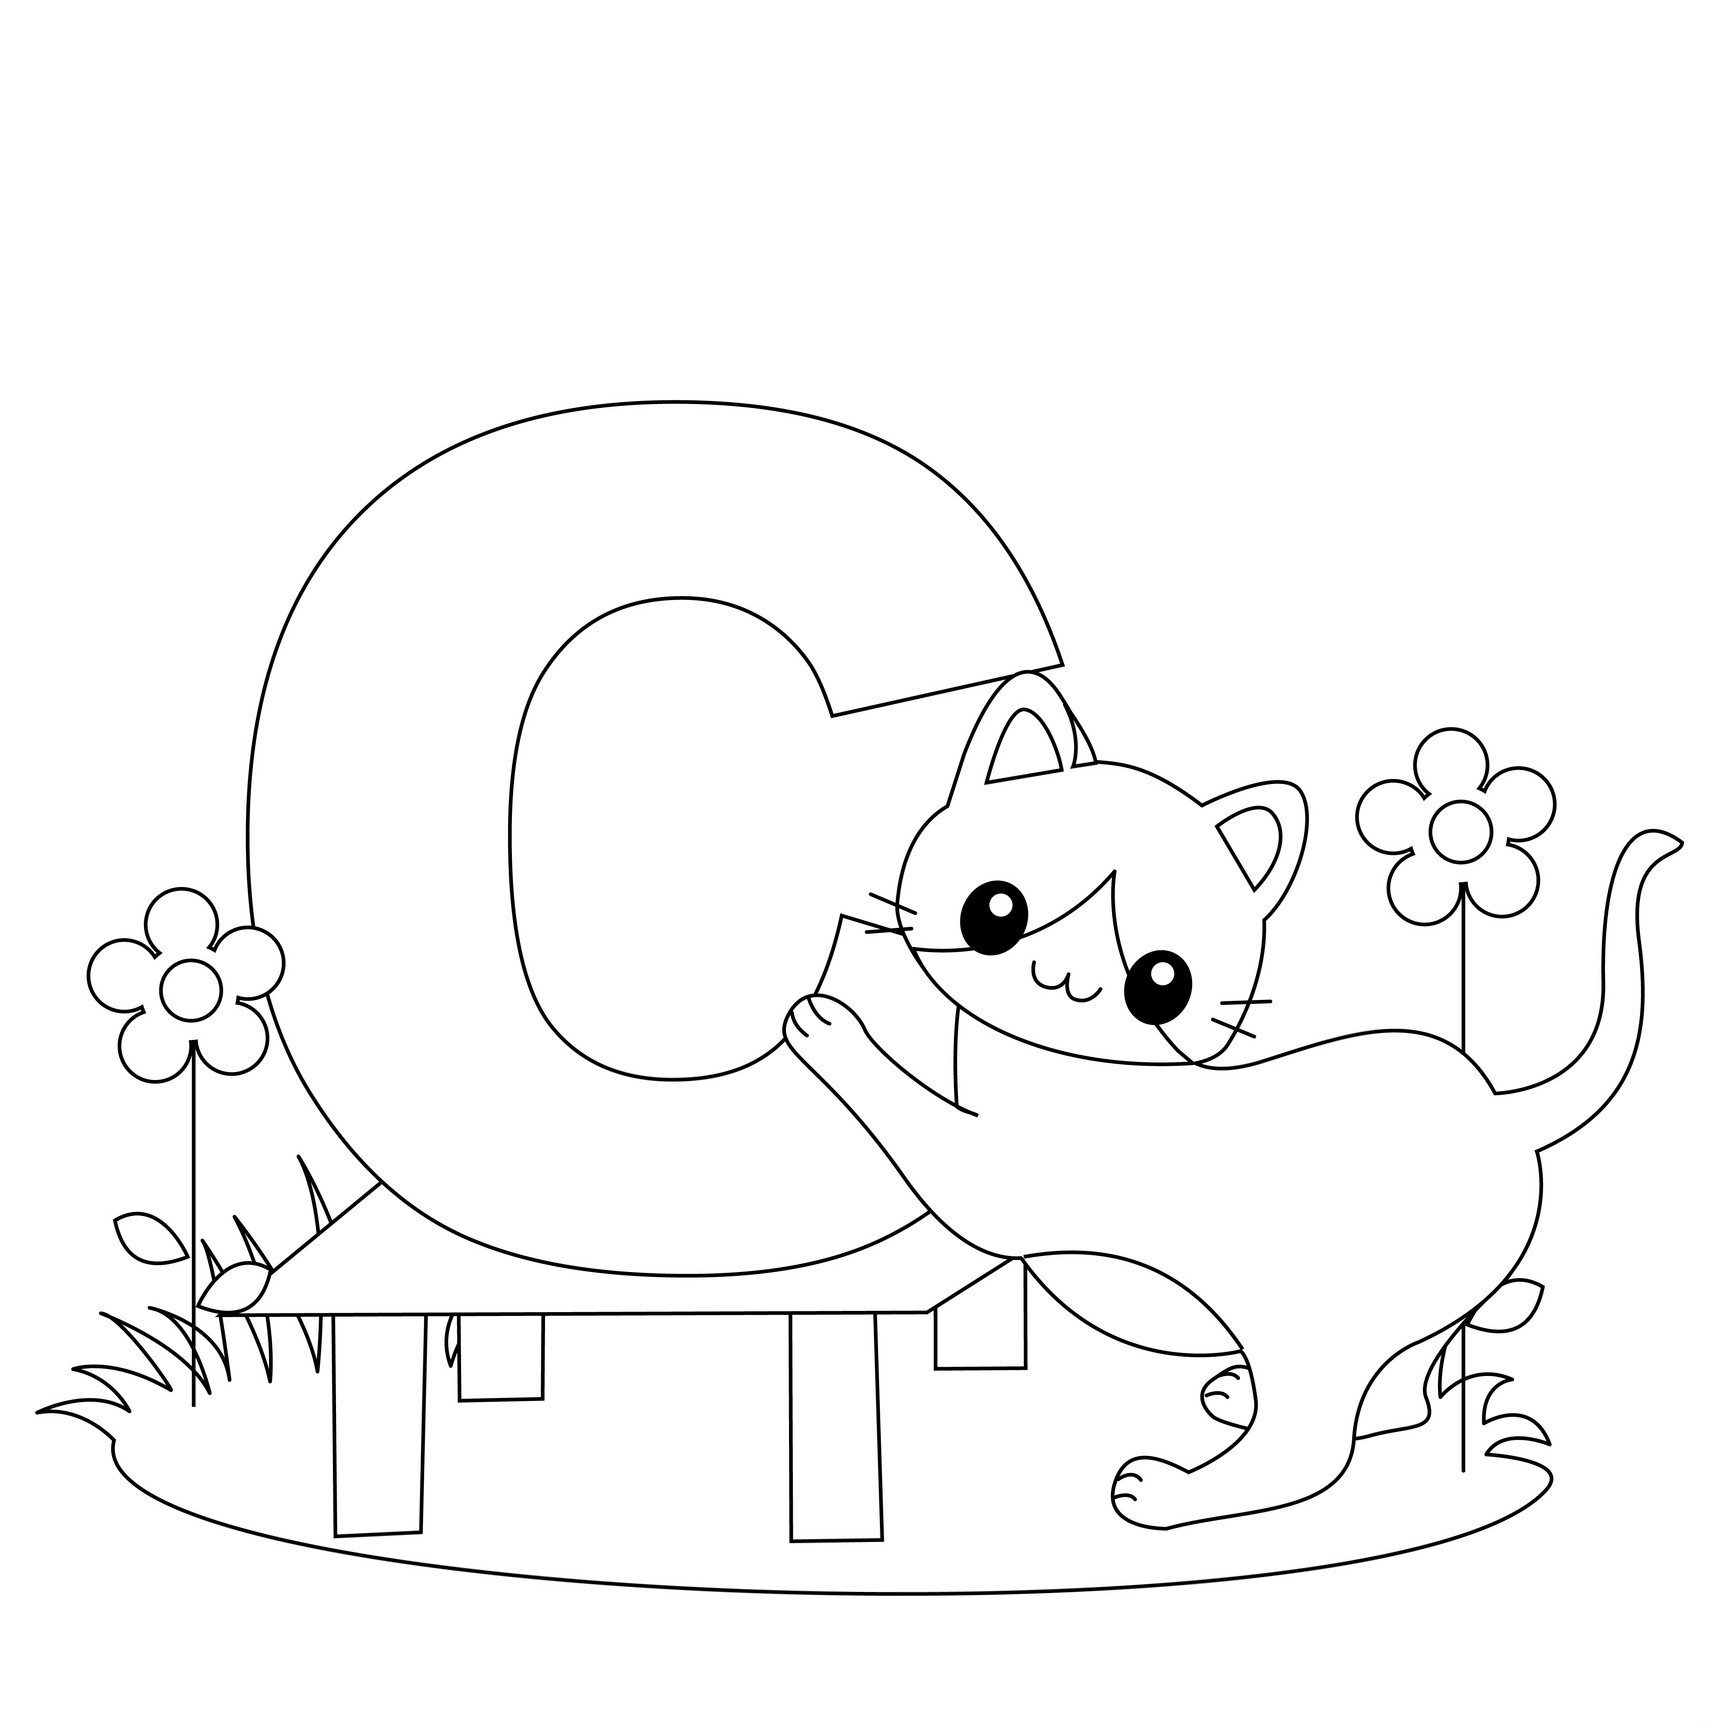 coloring pages letters letter s coloring pages to download and print for free letters coloring pages